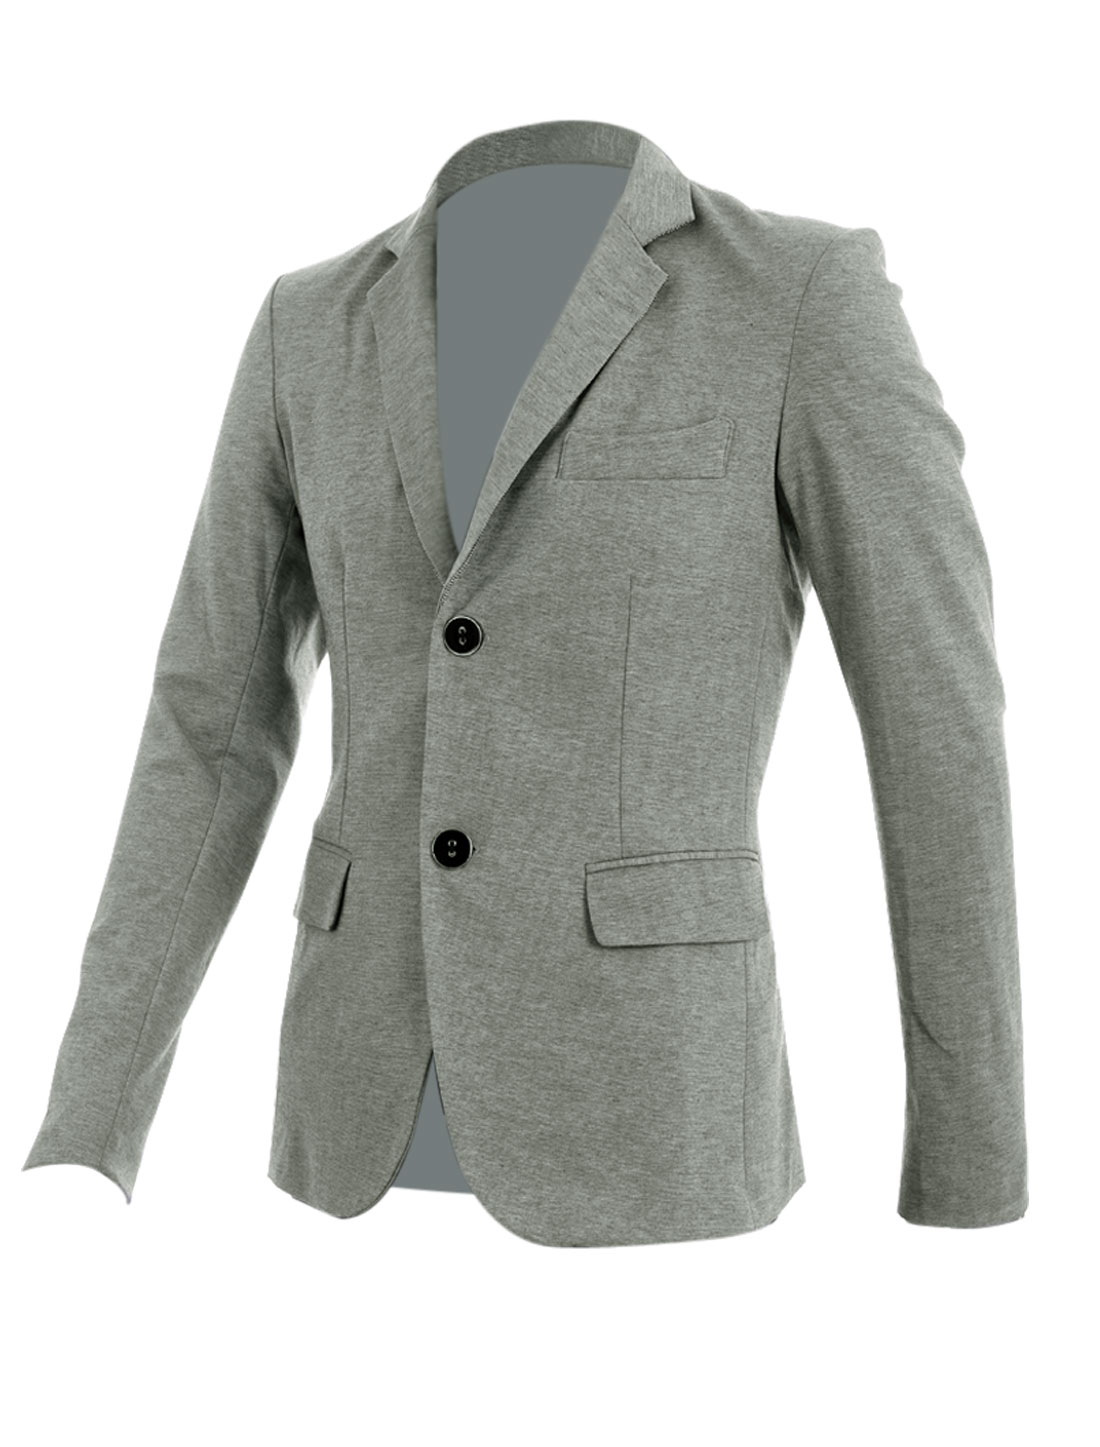 Grey M Slim Fit Style Patch Pockets Chest Pocket Fashion Men Blazer